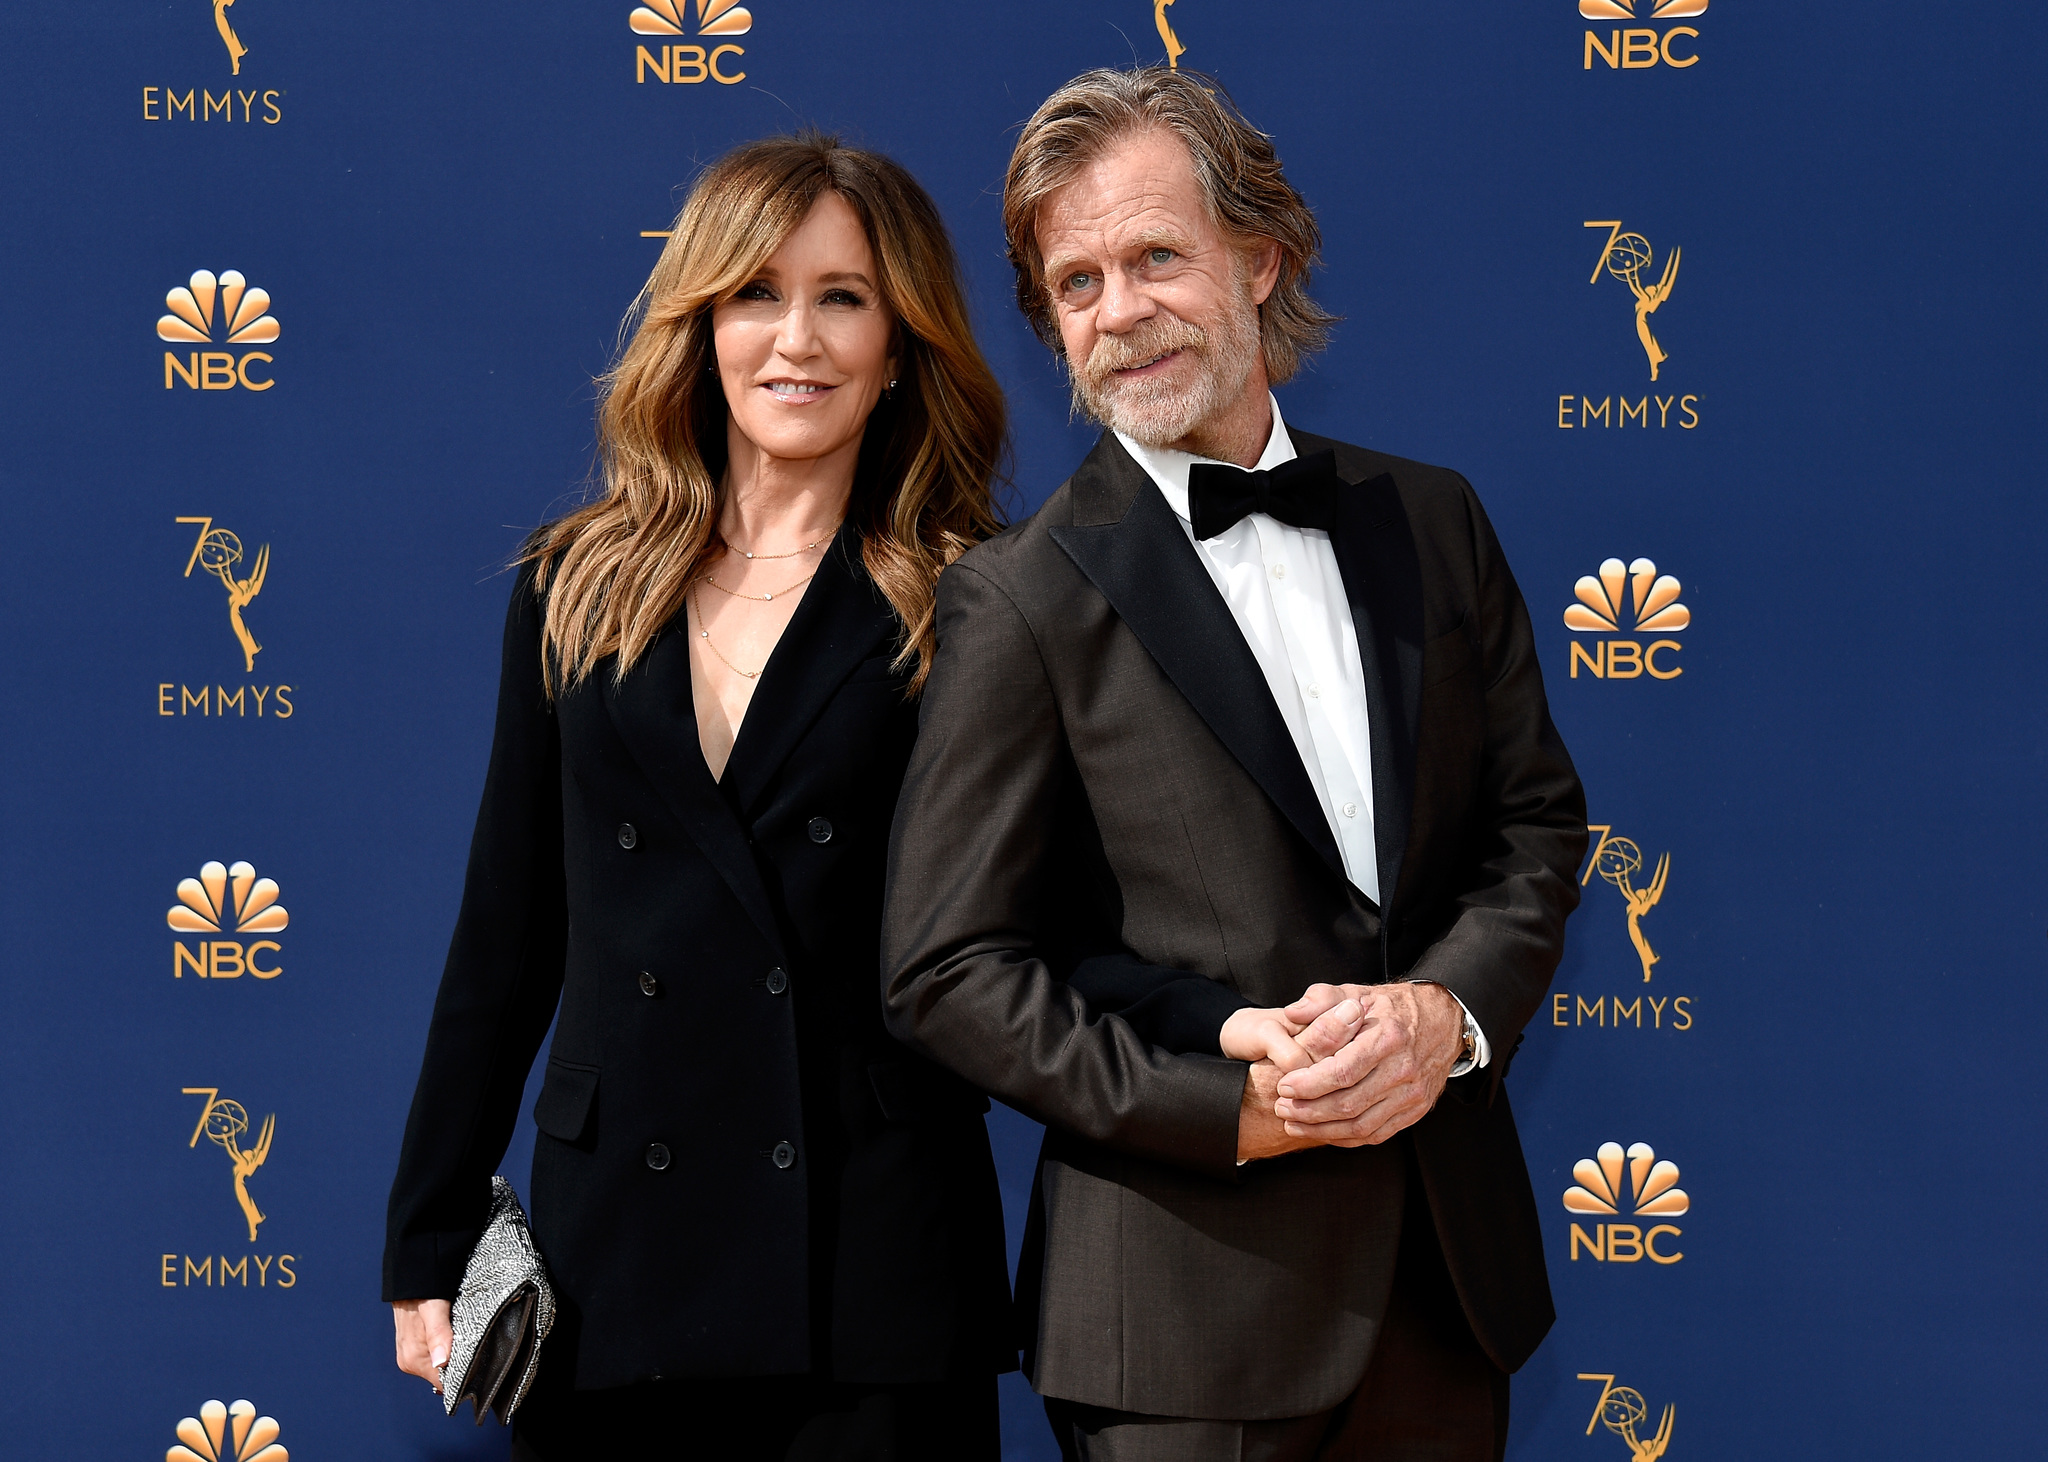 William H. Macy and Felicity Huffman at an event for The 70th Primetime Emmy Awards (2018)